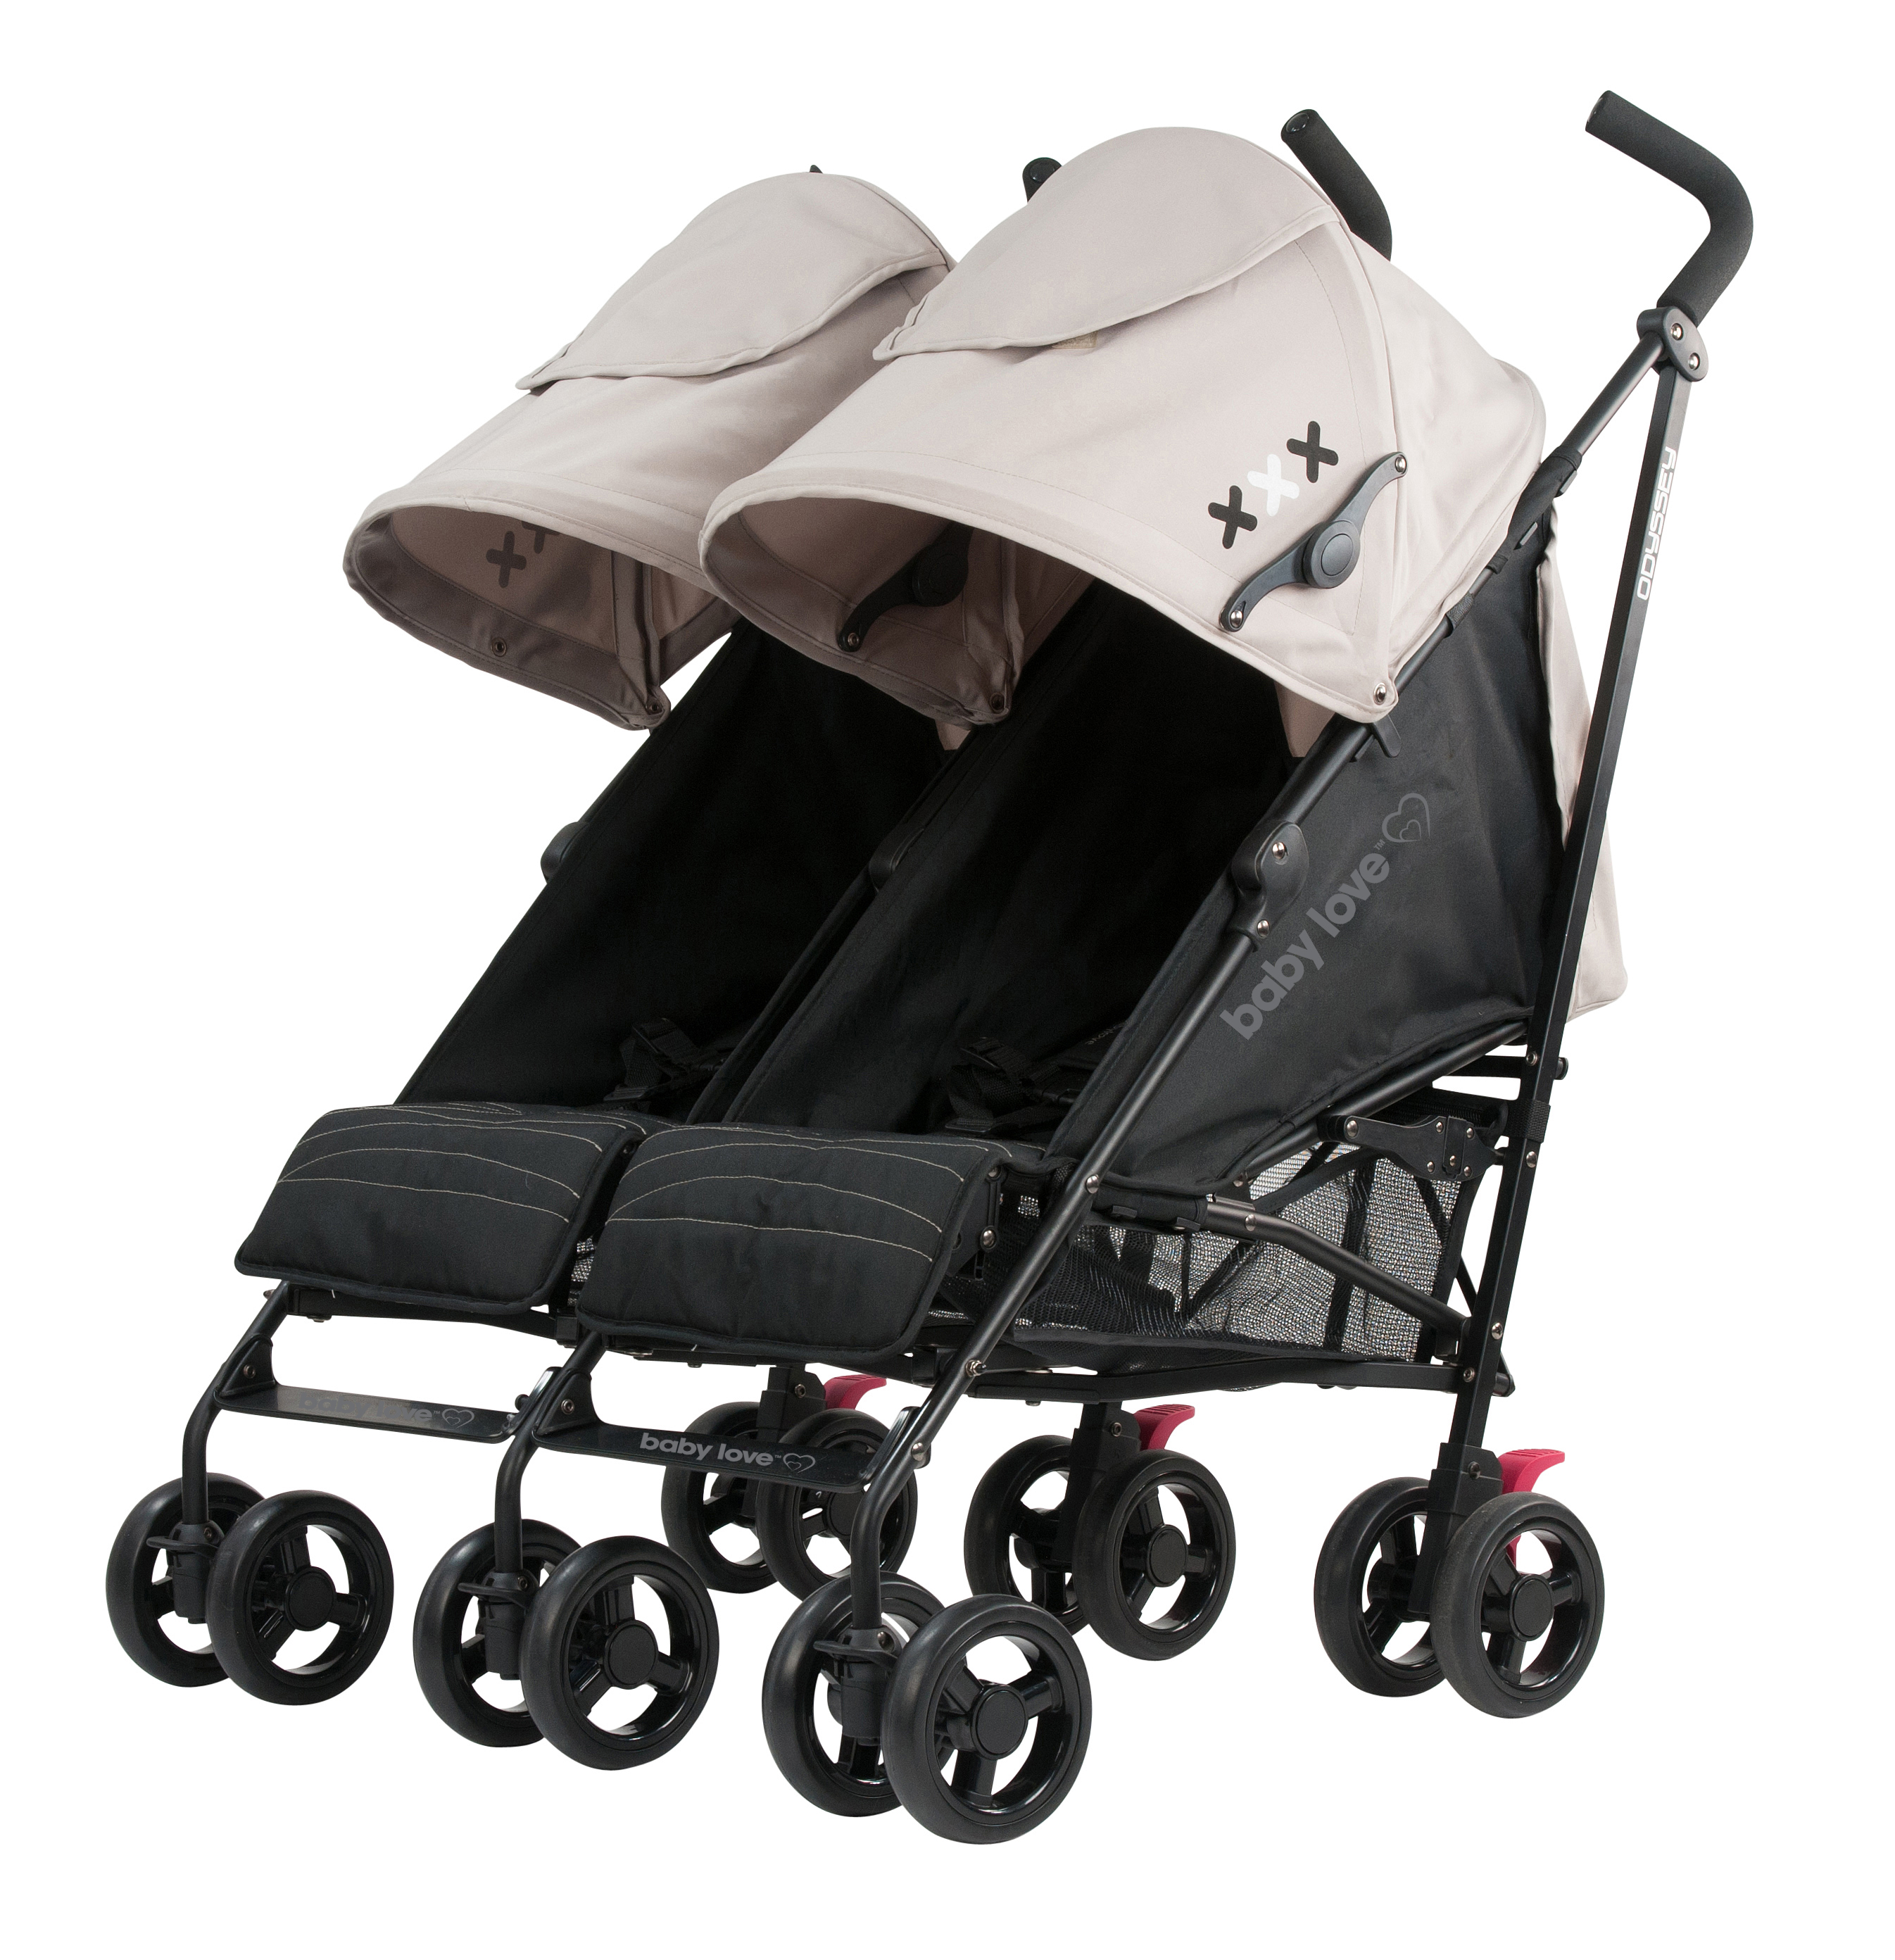 Compact Stroller Nz Babylove Odyssey Twin Stroller Tan